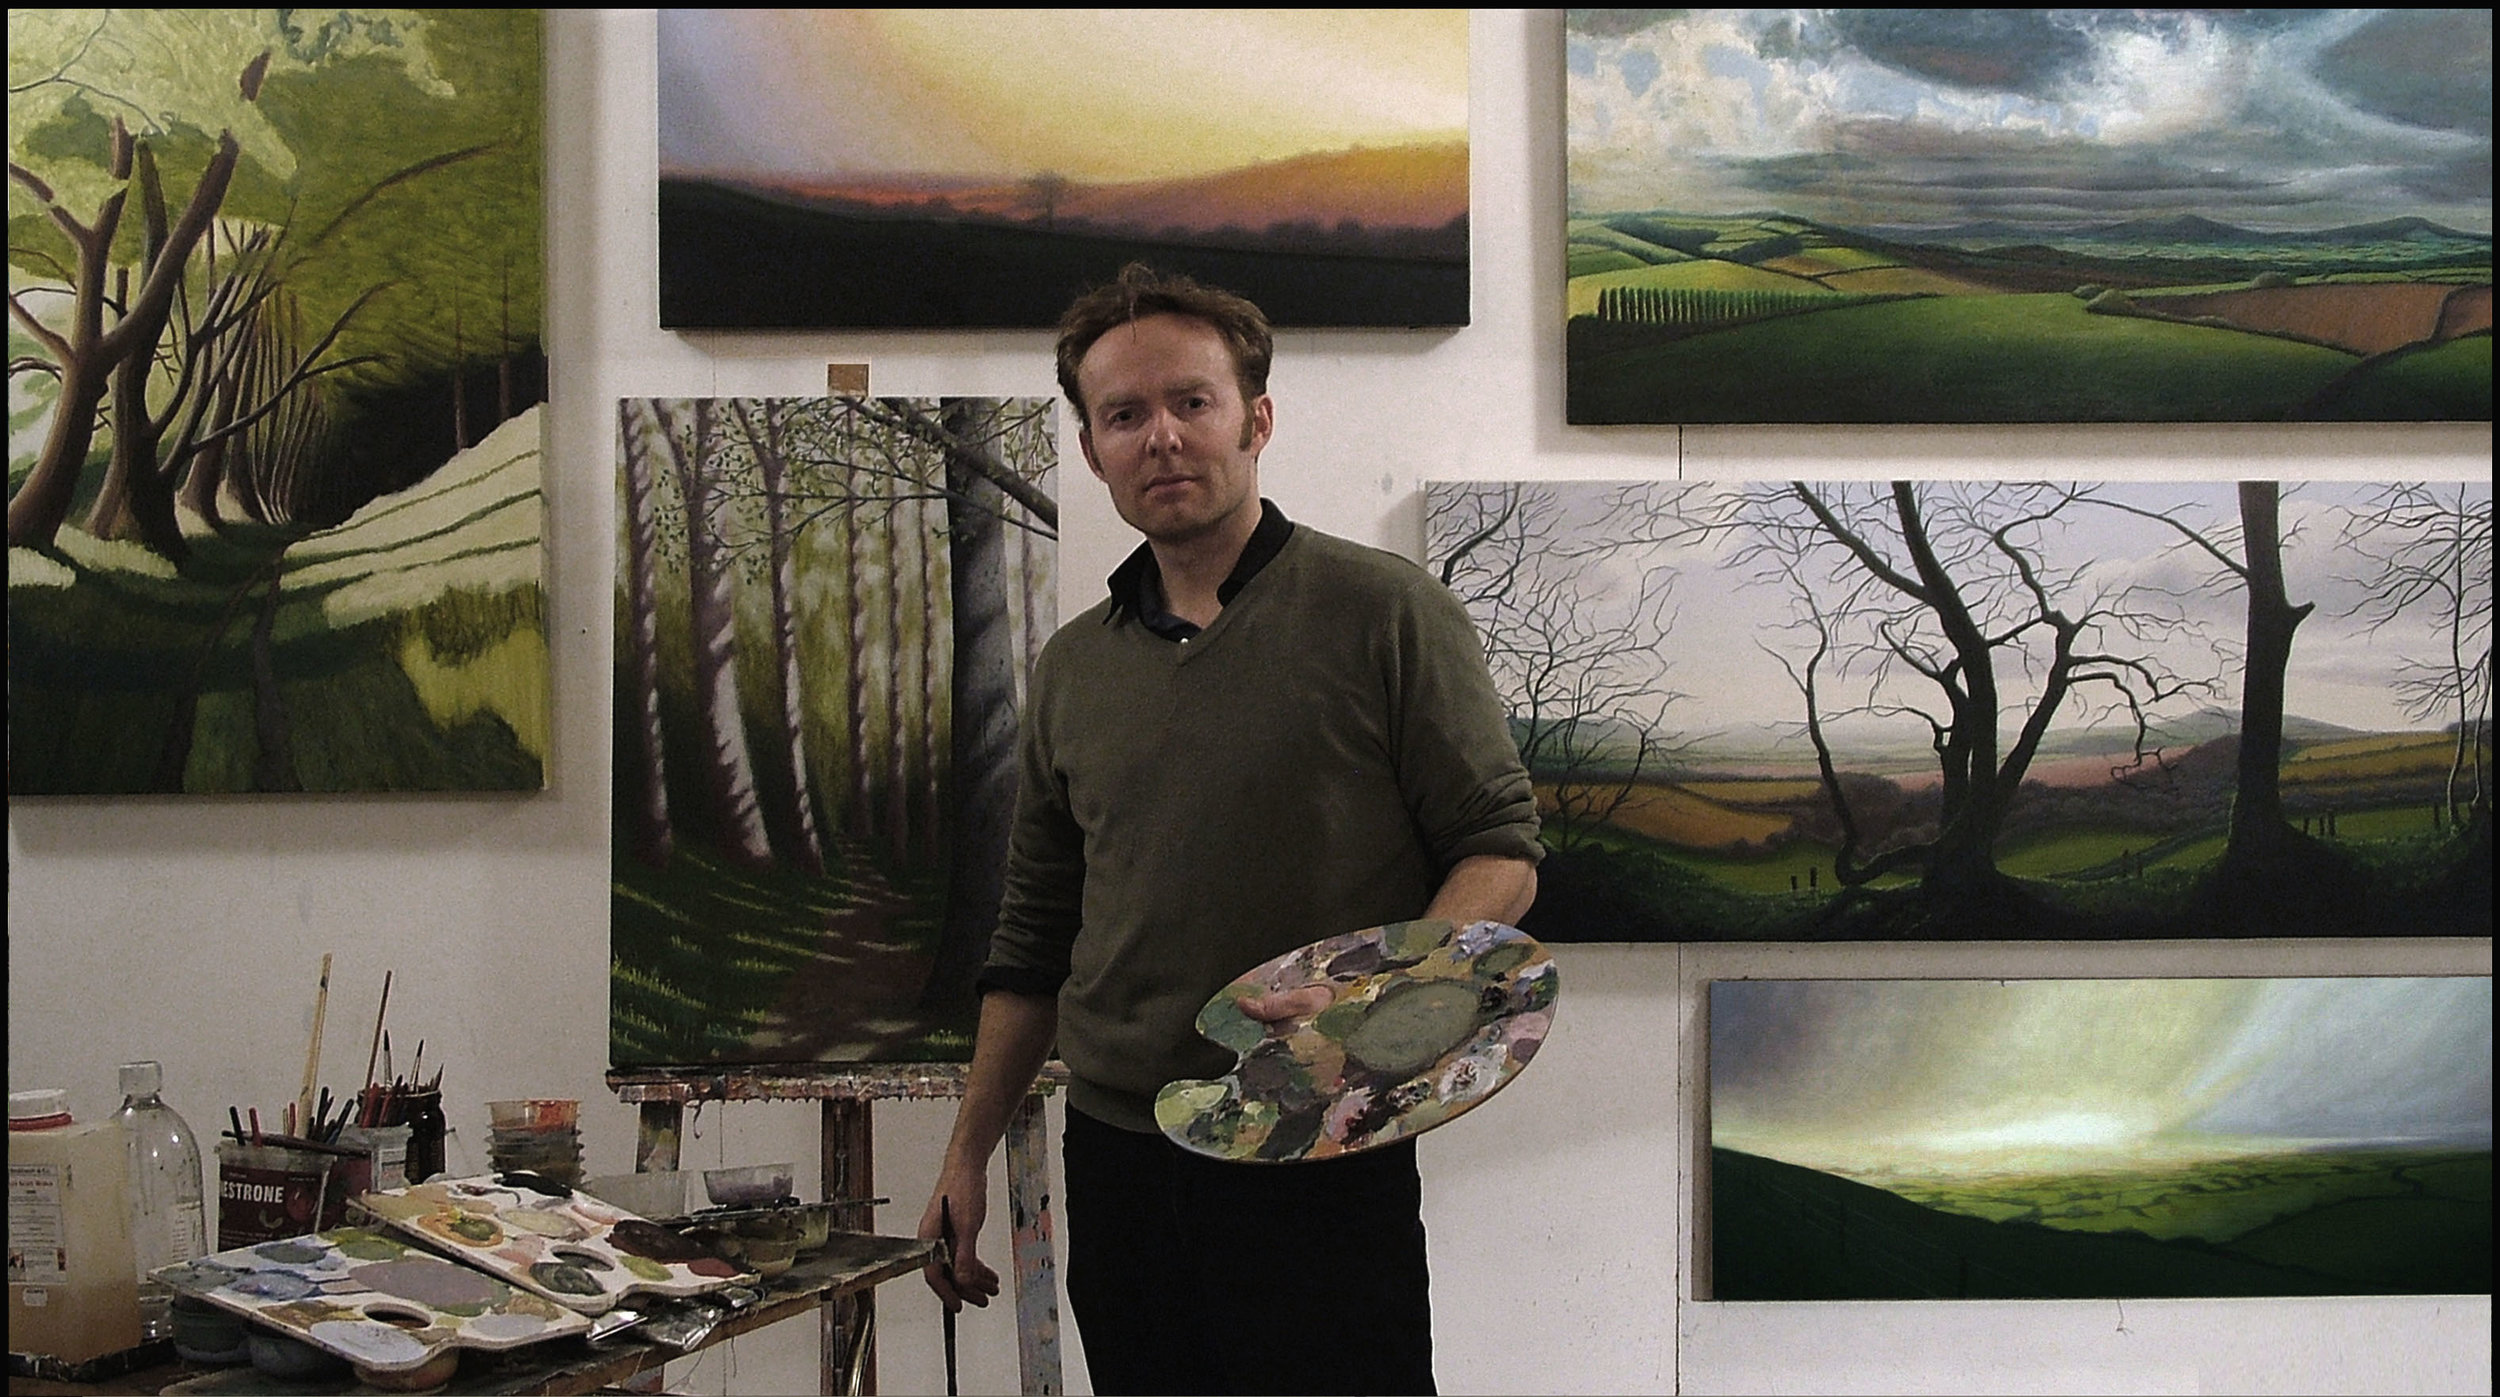 Kit Glaisyer at St Michael's Studios, The Art & Vintage Quarter, Bridport, Dorset DT6 3RR